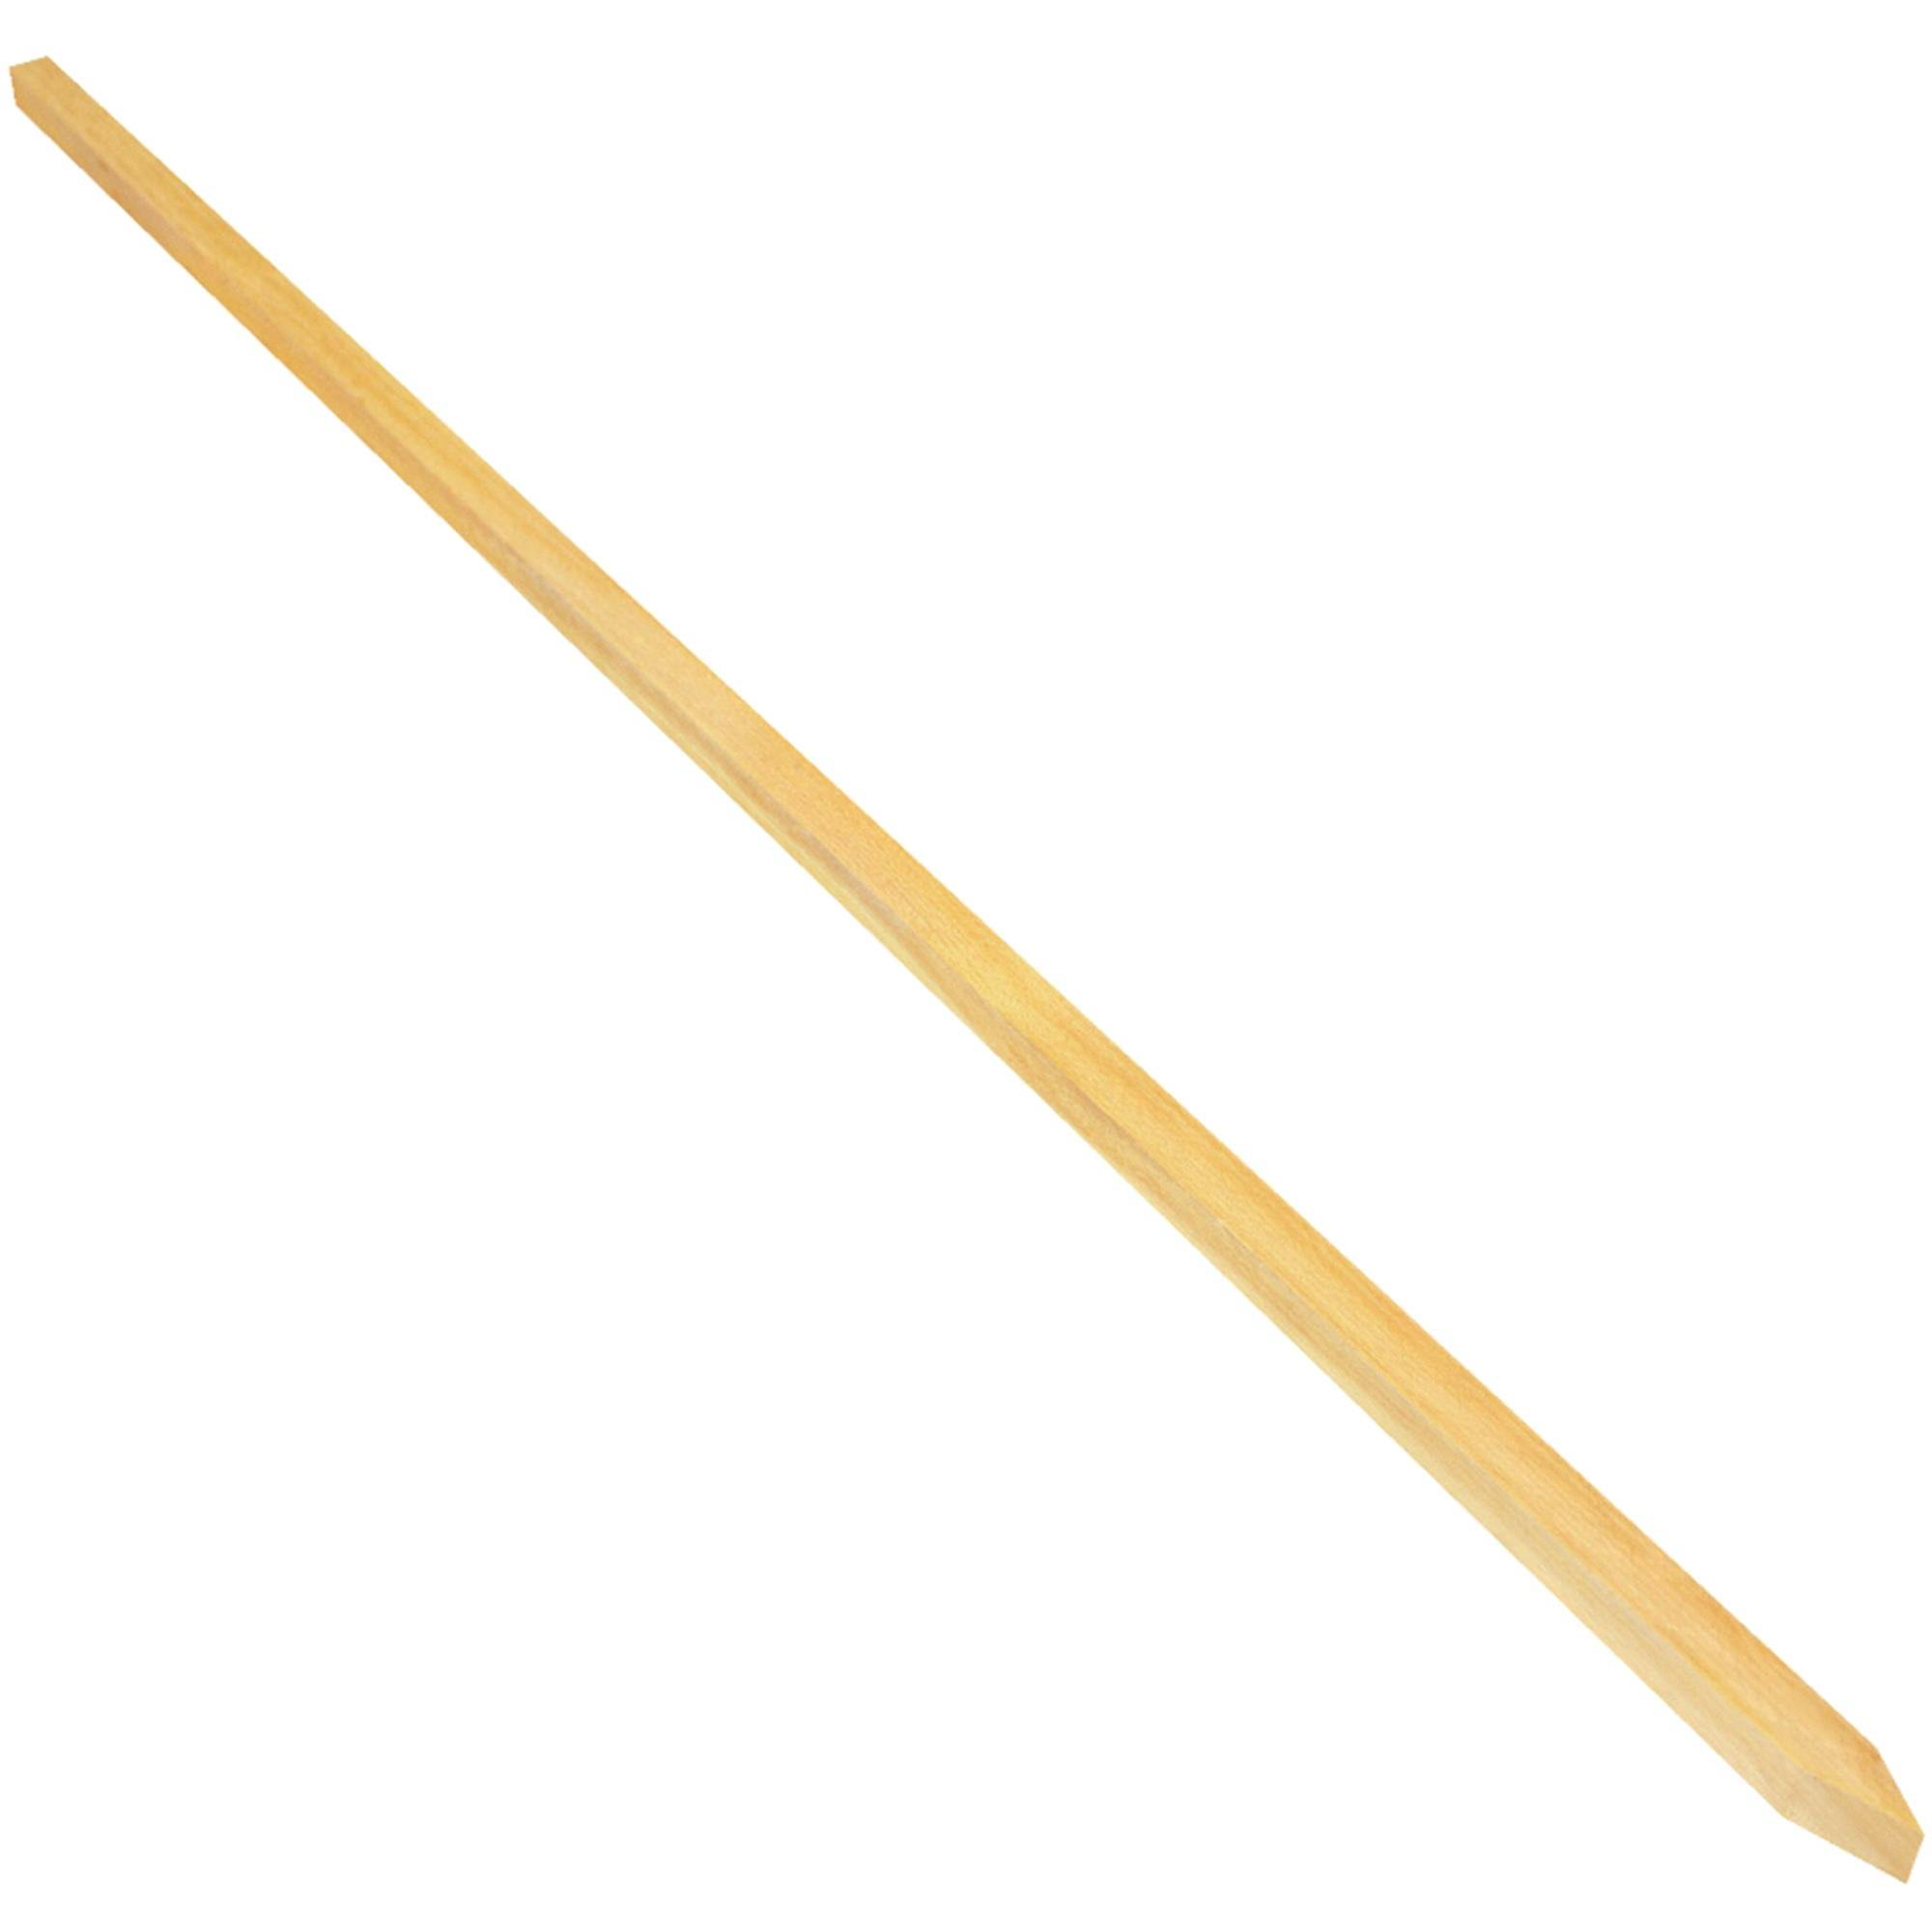 Greenes Fence Wood Plant Stake - 6ft